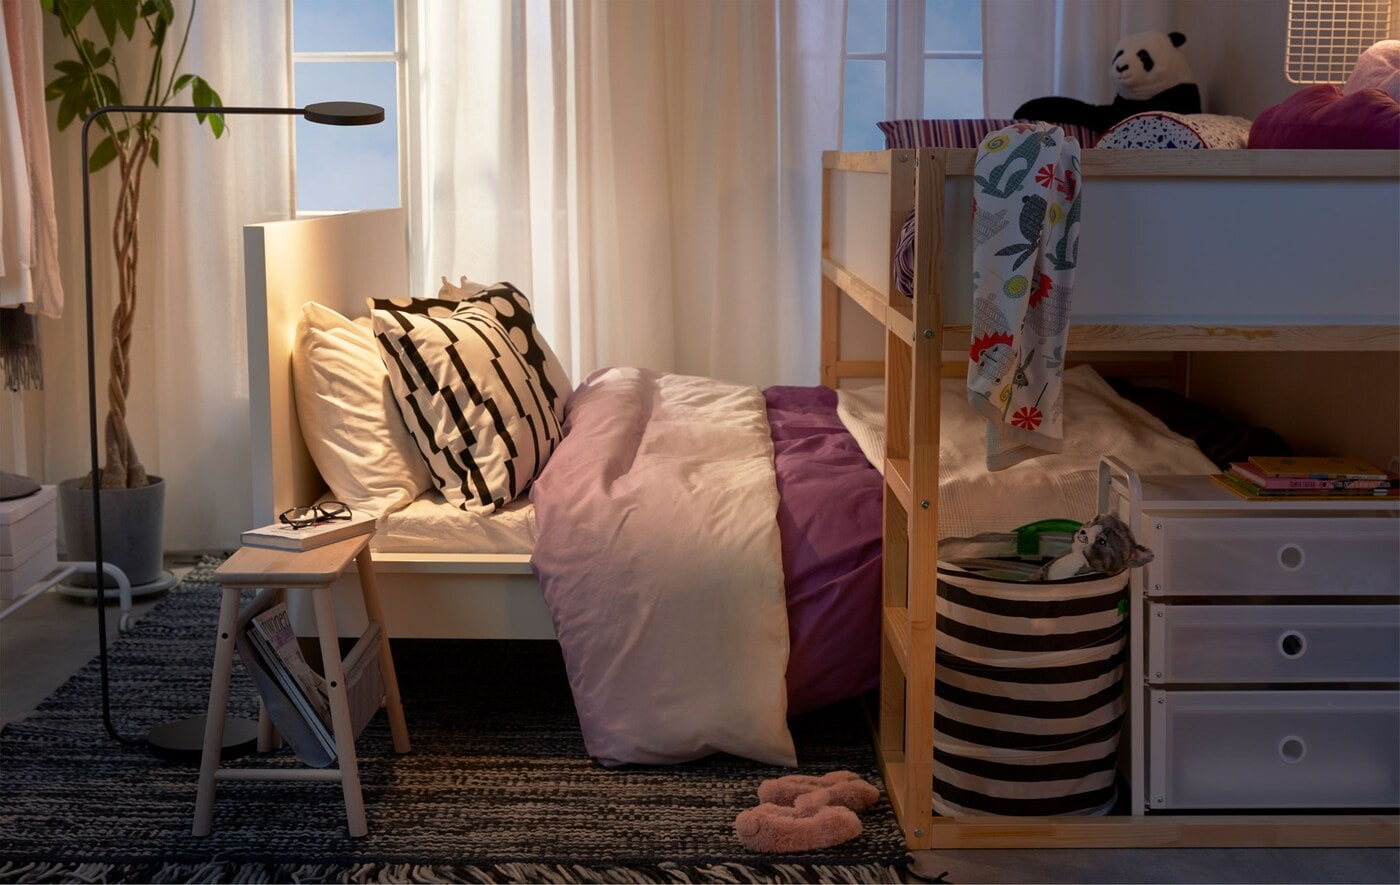 Loft bed standing across a lower bed, as a child's bed straddling the parents', in a small-space bedroom.